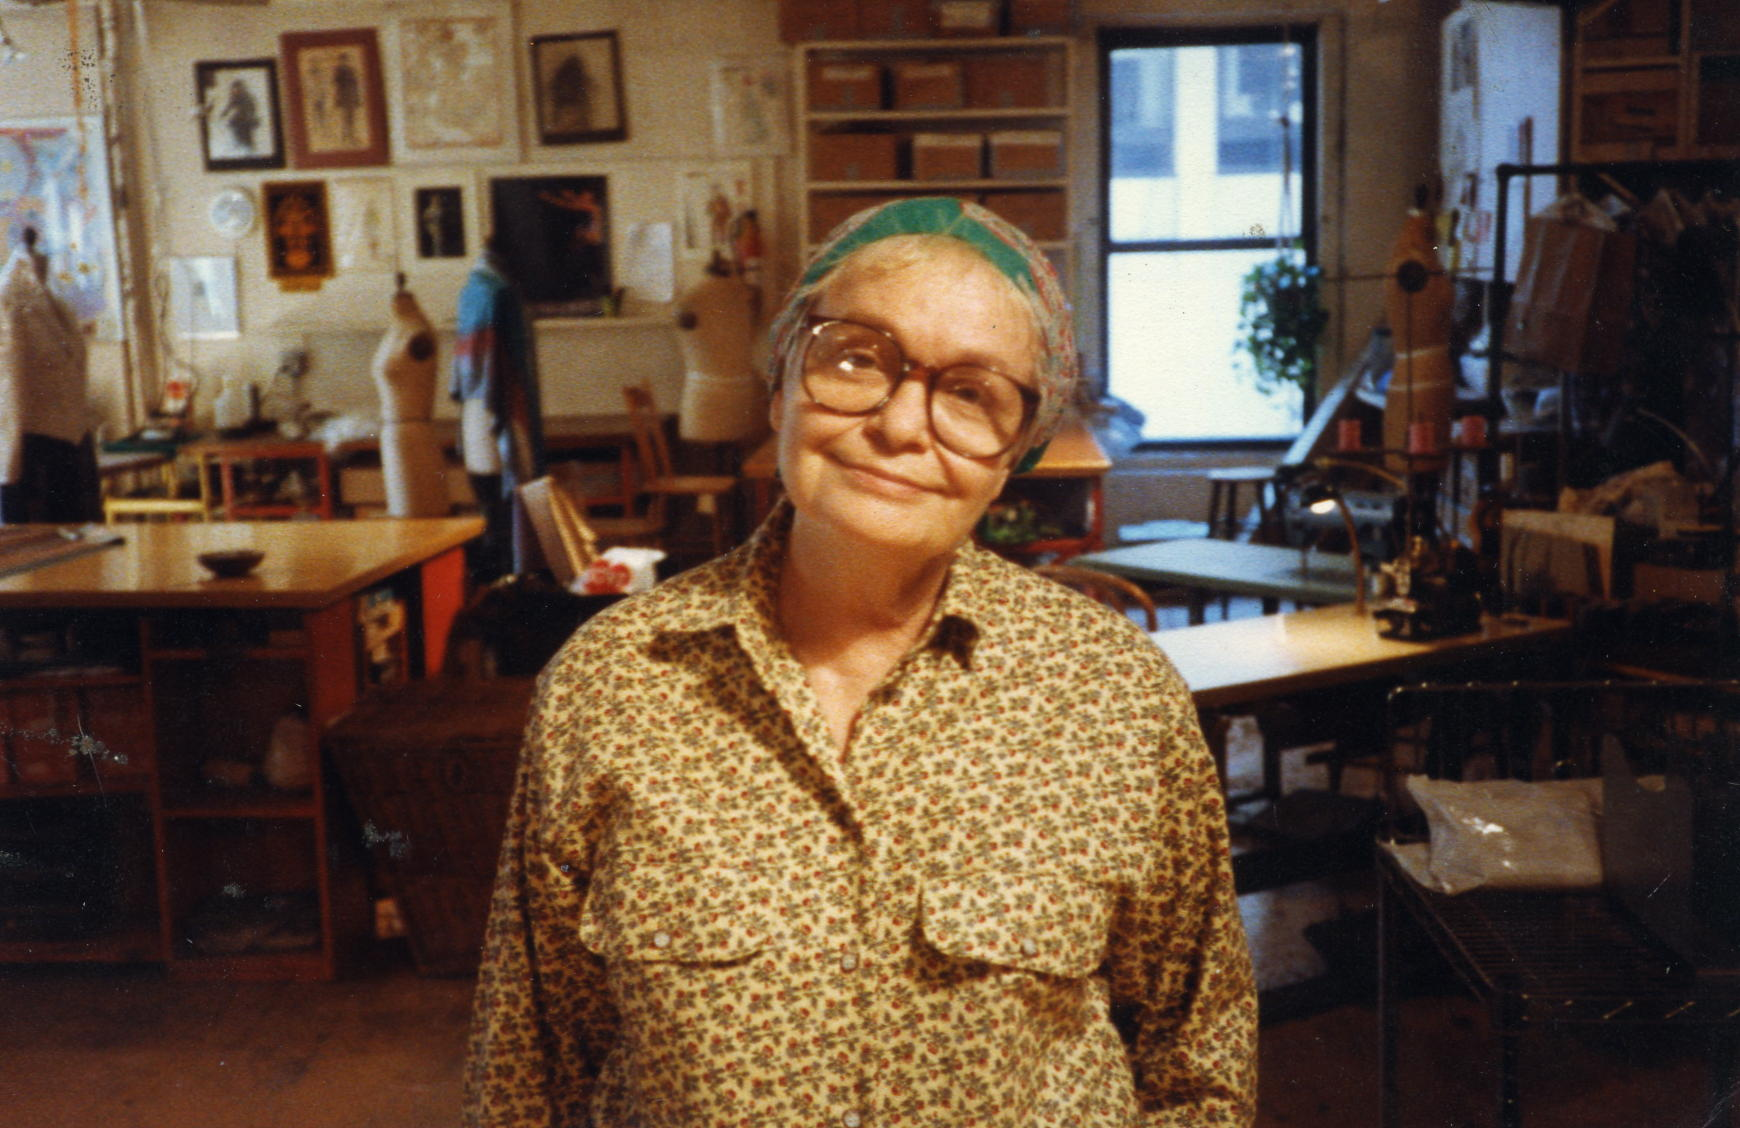 Betty Vickery Williams in The Studio on 7th Avenue in the 90's